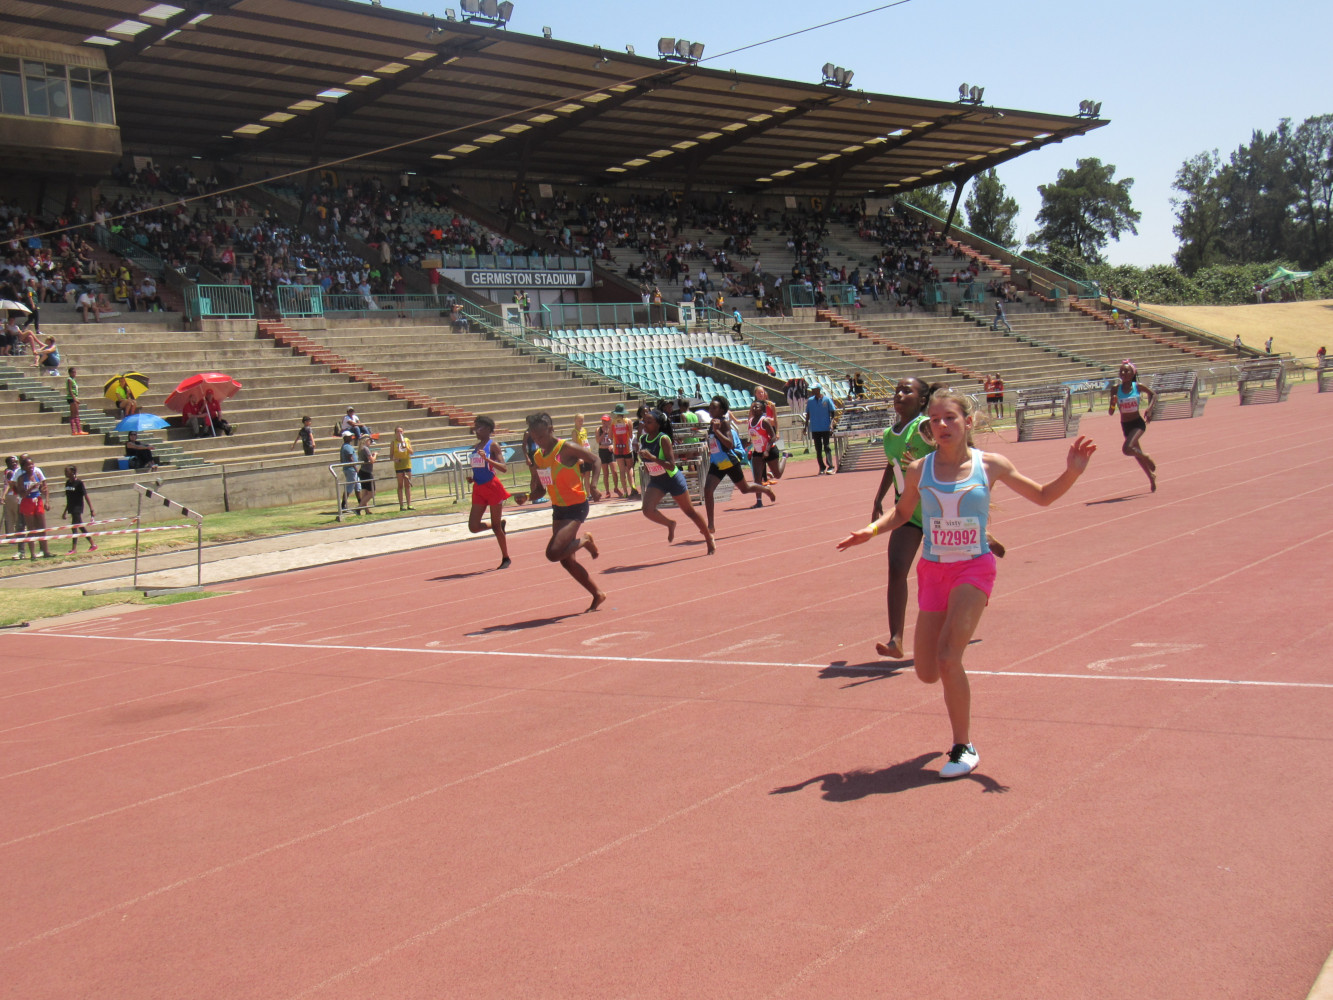 Track & Field Open Meeting Germiston Stadium (1)